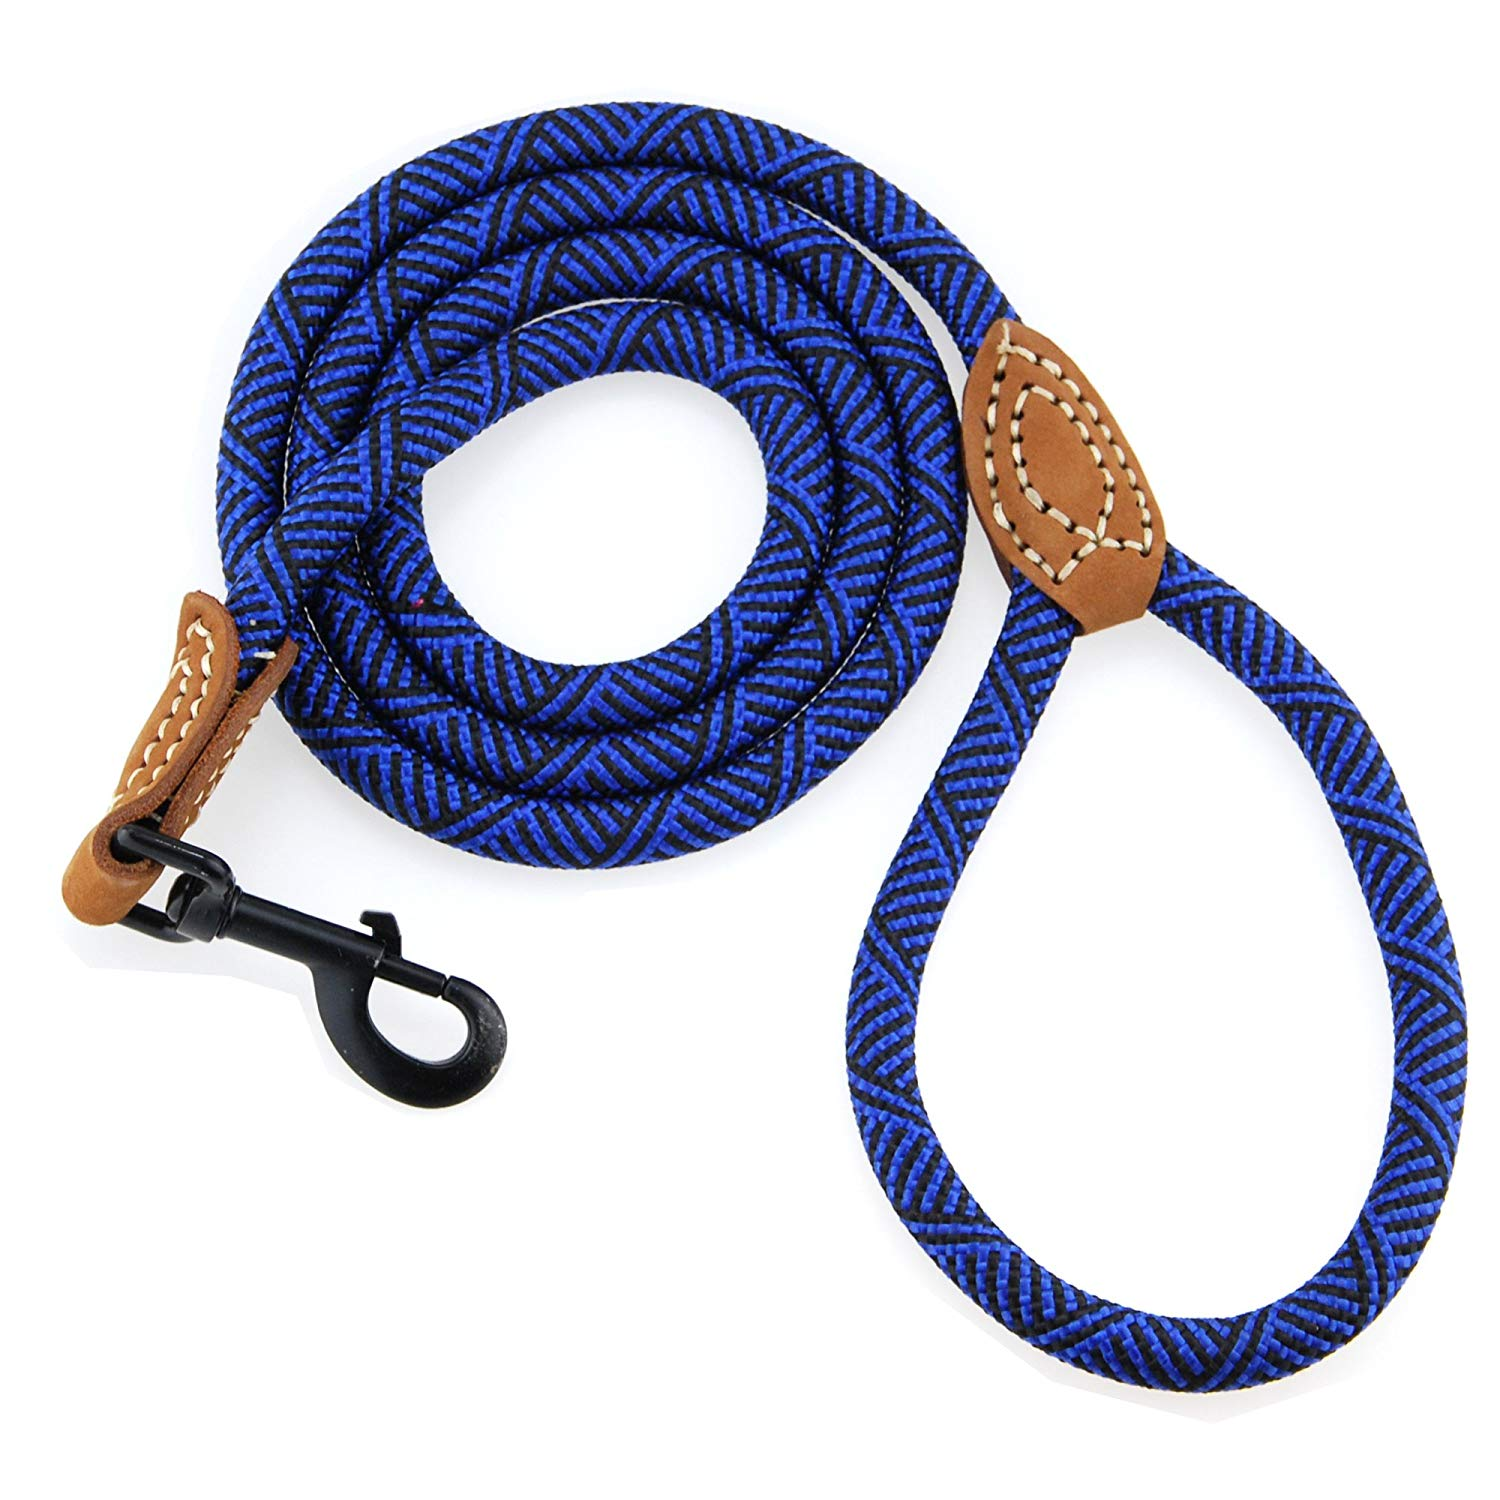 Whole Sale Dozen Dog Rope Leash with Metal Sturdy Clasp and Leather Top (Free Shipping)